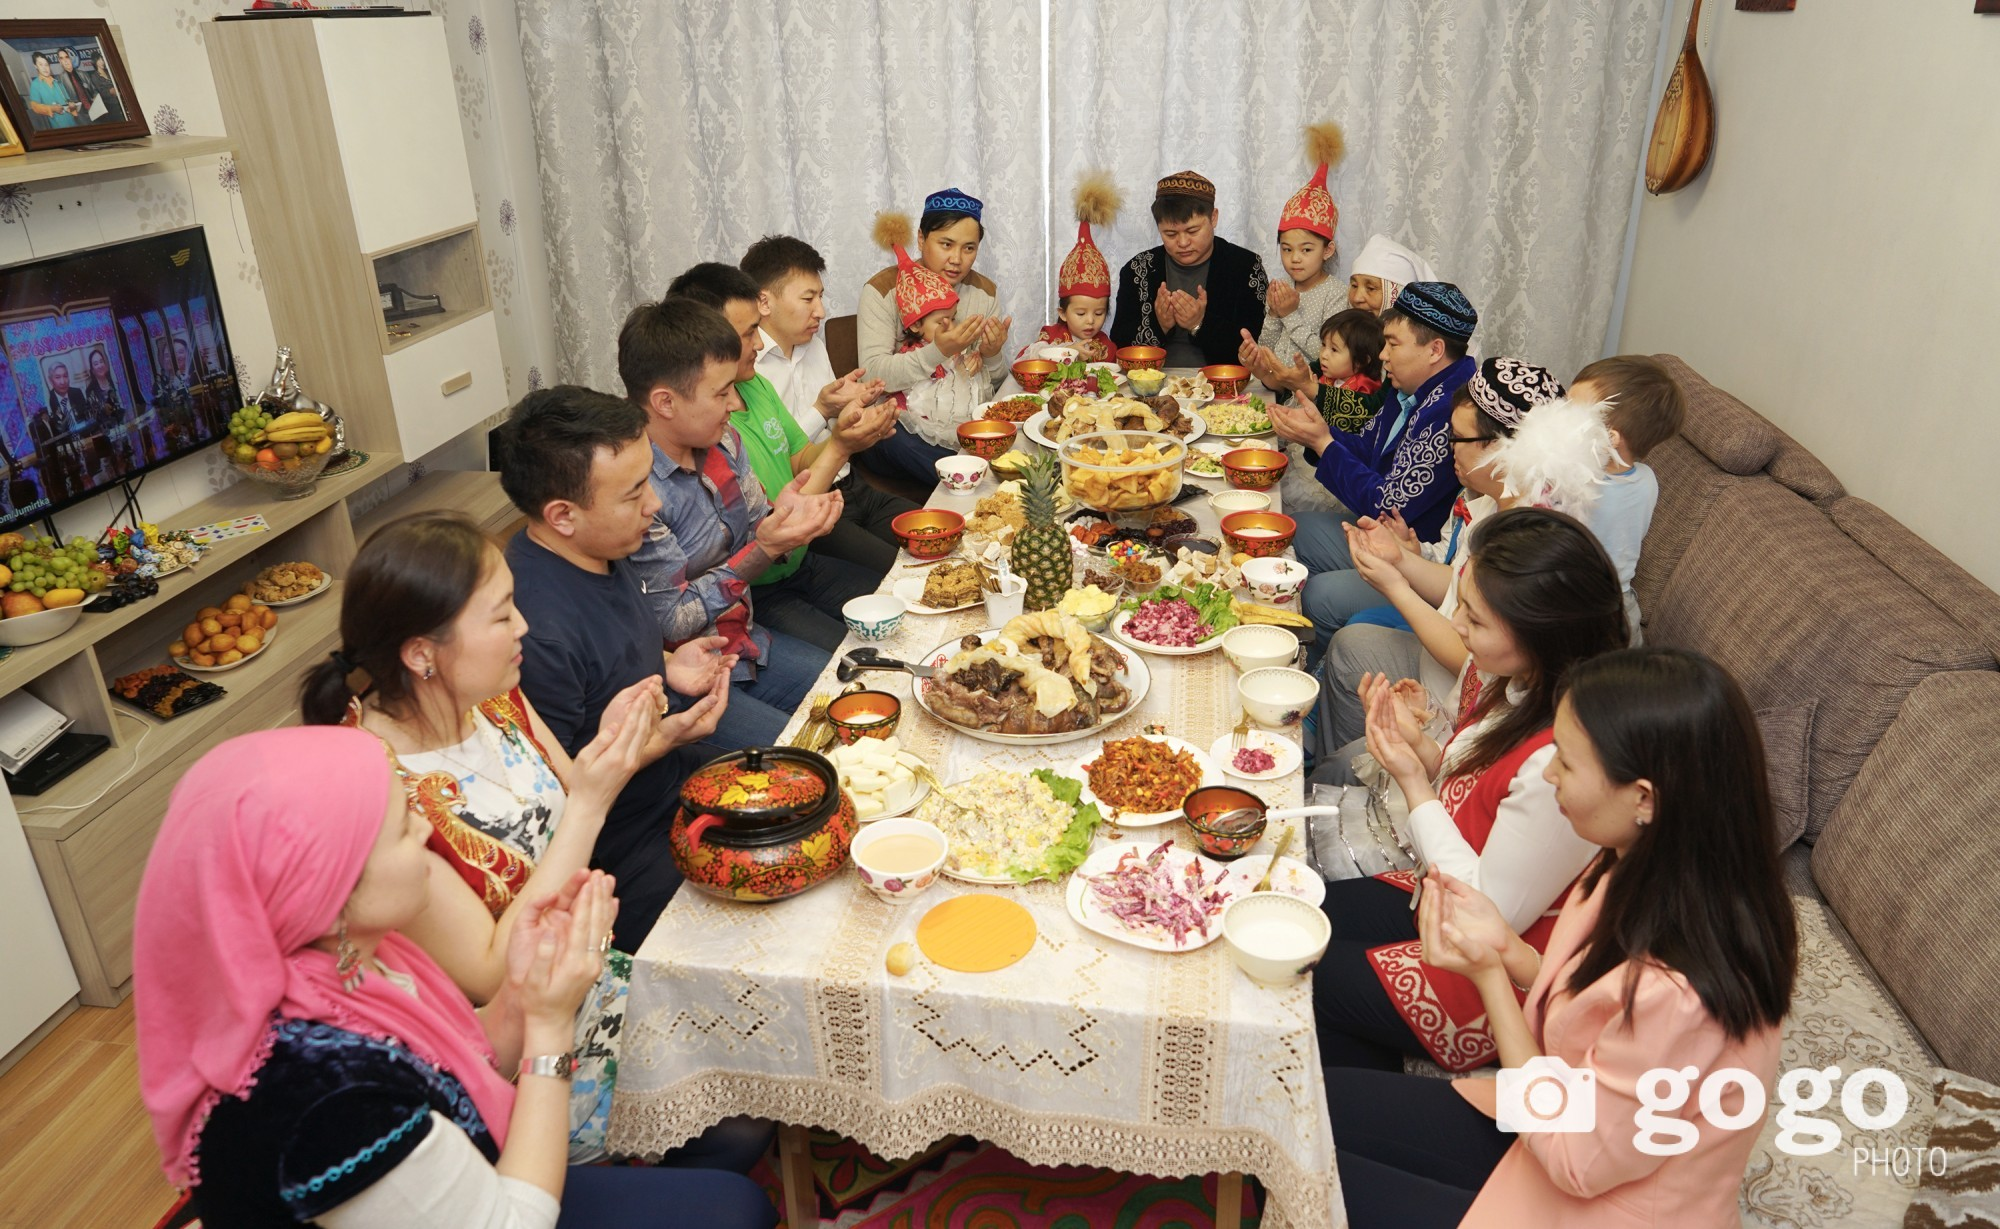 Eldest person of the family must say blessings before eating the dishes. Others must open their hands into their face when listening the blessings.